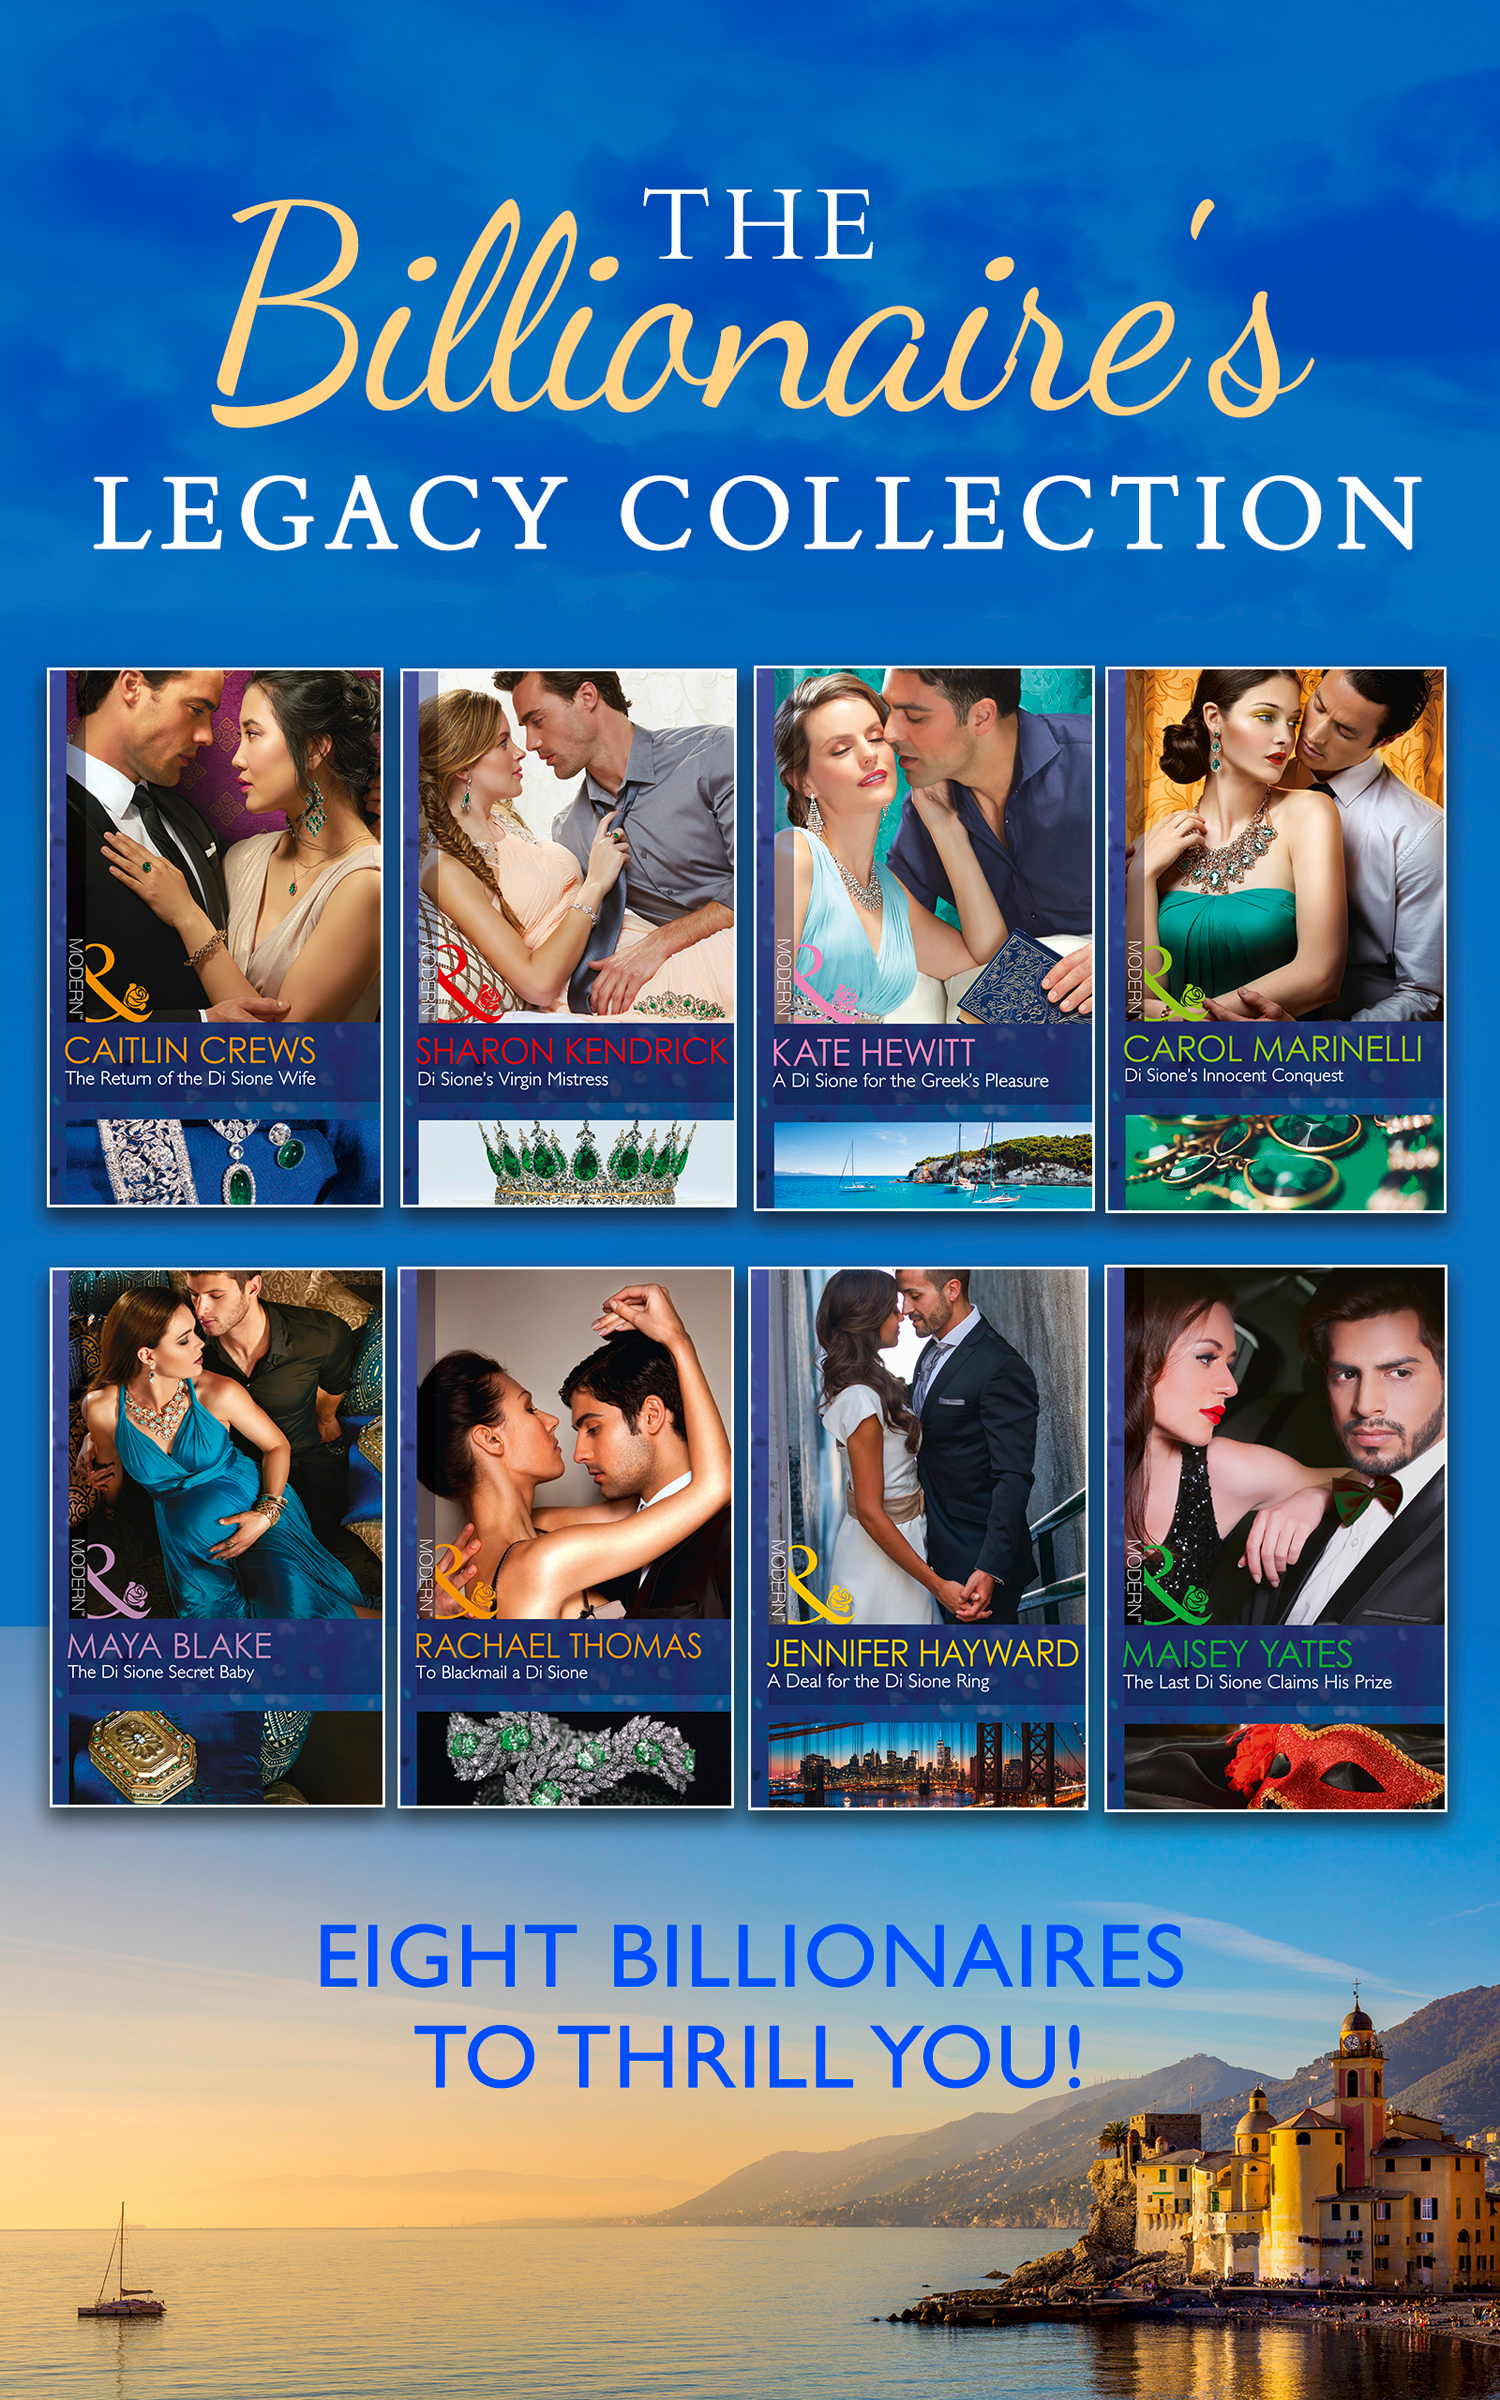 The Billionaire's Legacy Collection